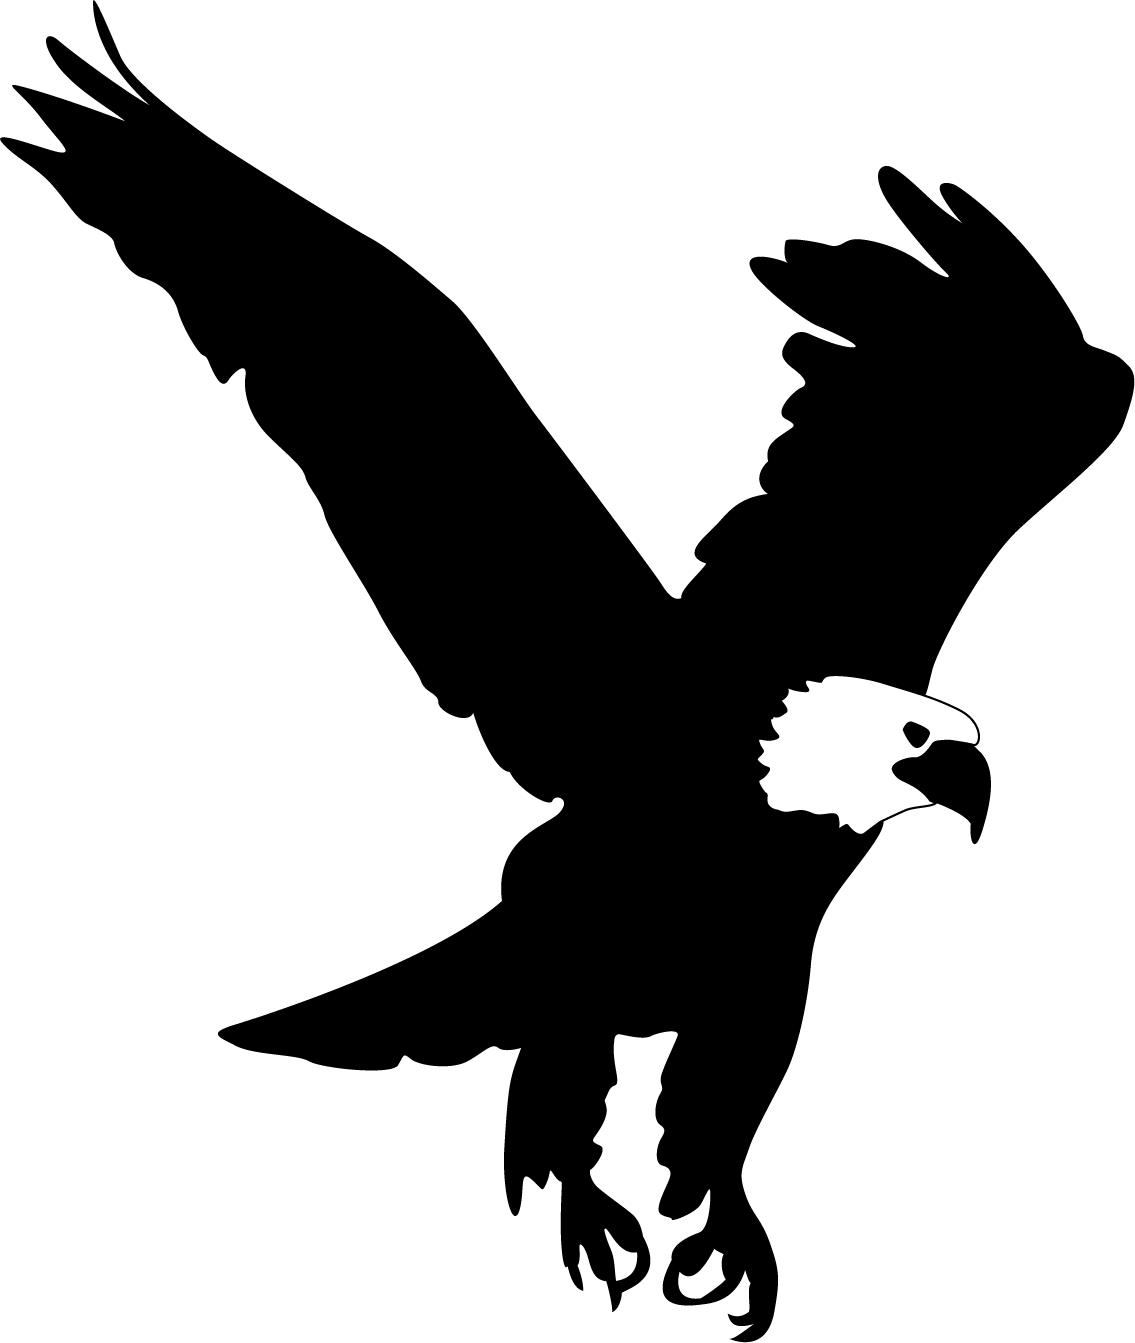 eagle silhouette clip art free at getdrawings com free for rh getdrawings com clip art of eagles clip art of eagles soaring